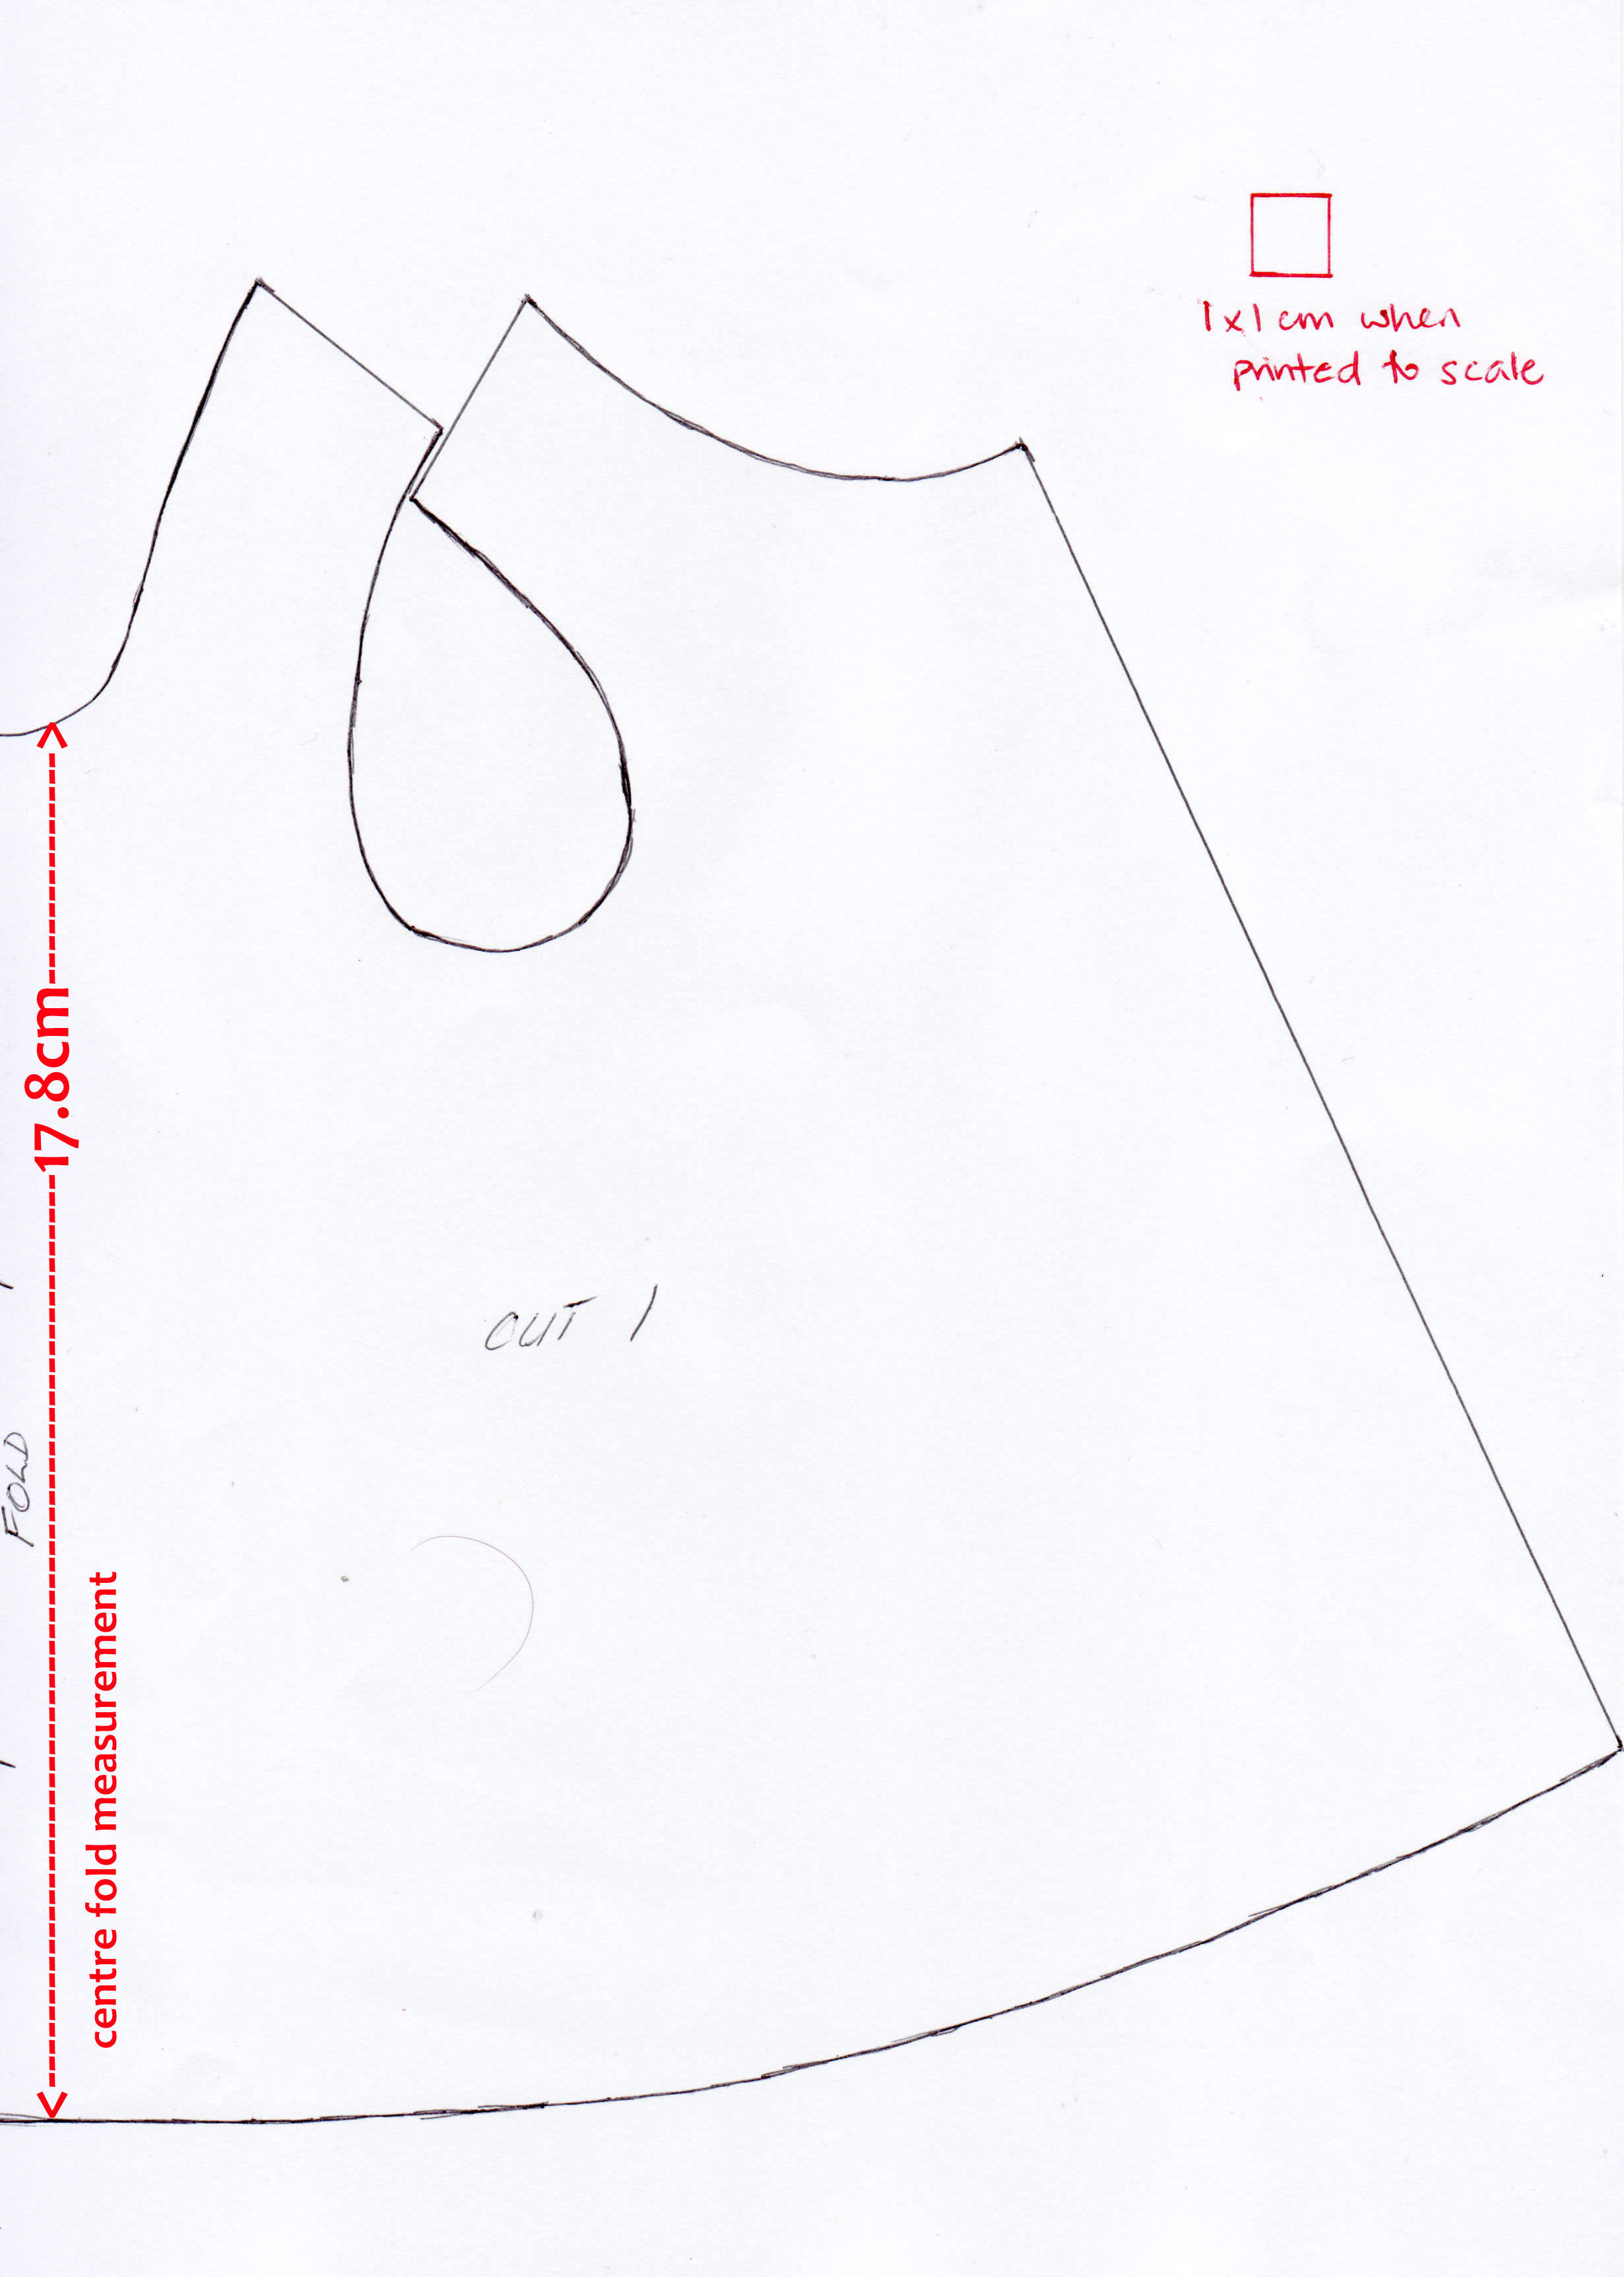 Girls 1.6kg gown with measurements.